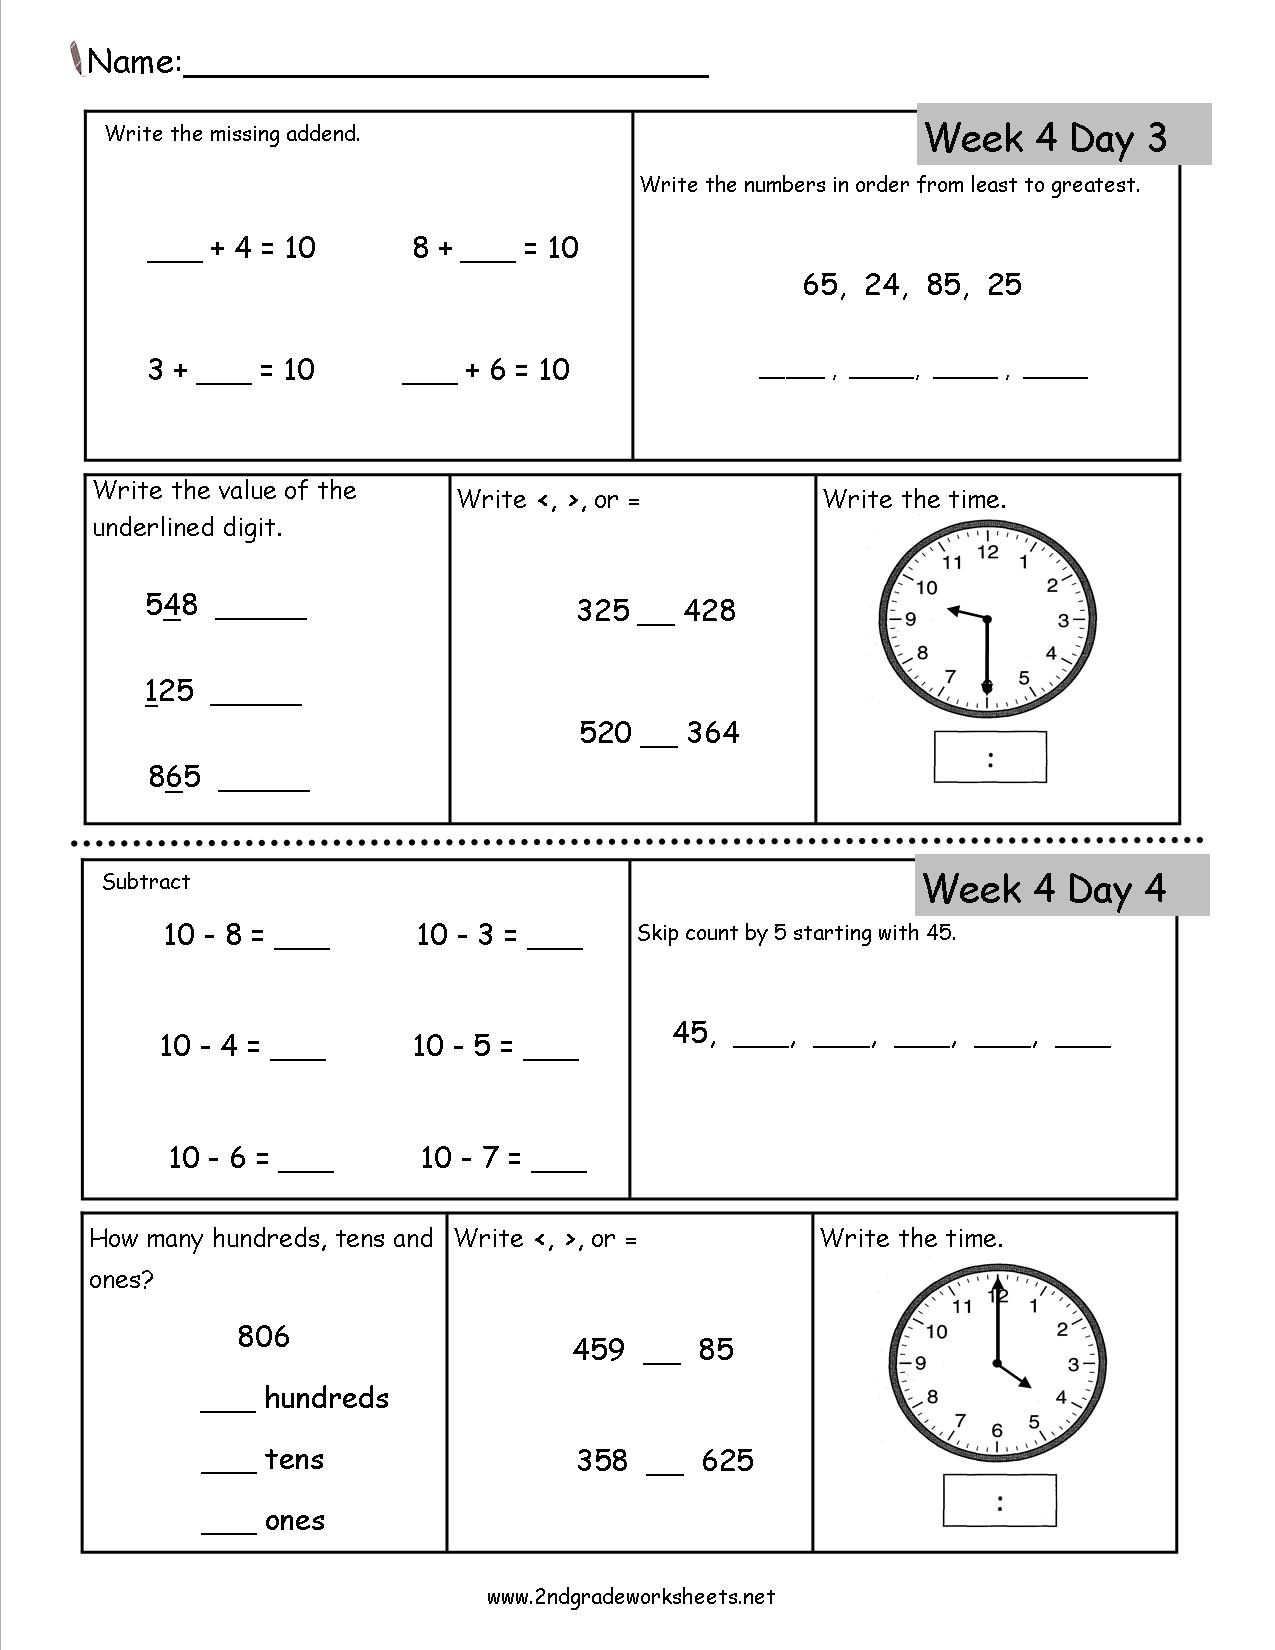 17 Best Images Of Worksheets First Second Third